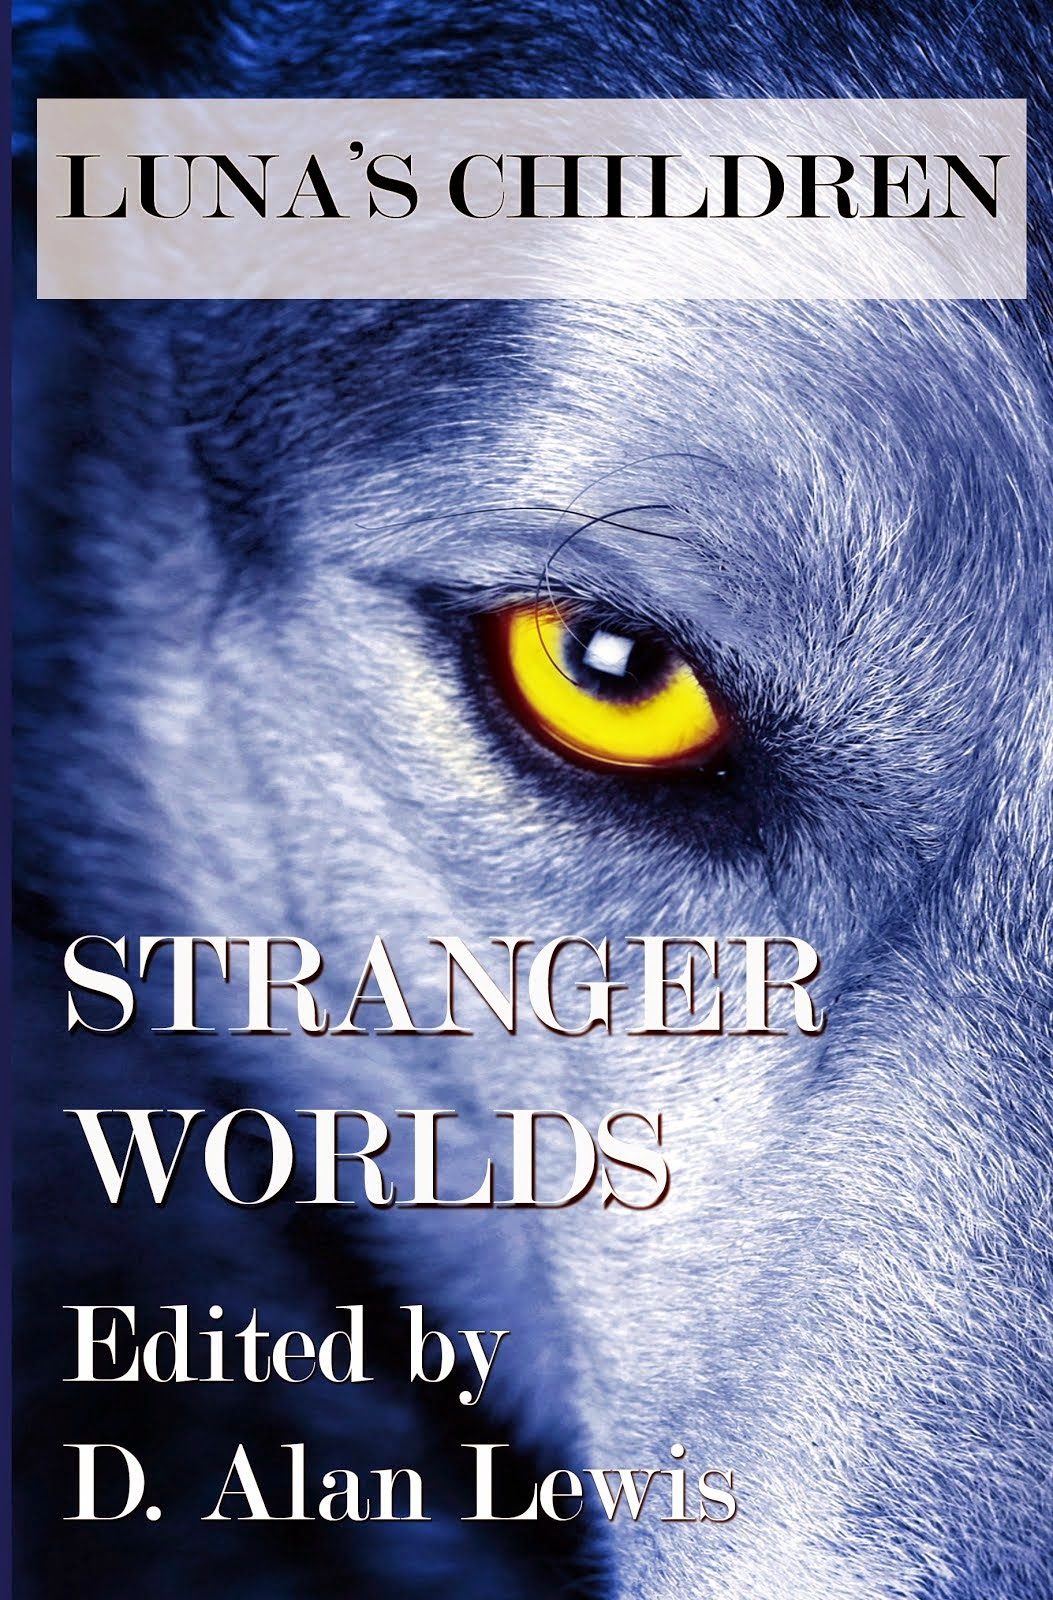 Luna's Children: Stranger Worlds